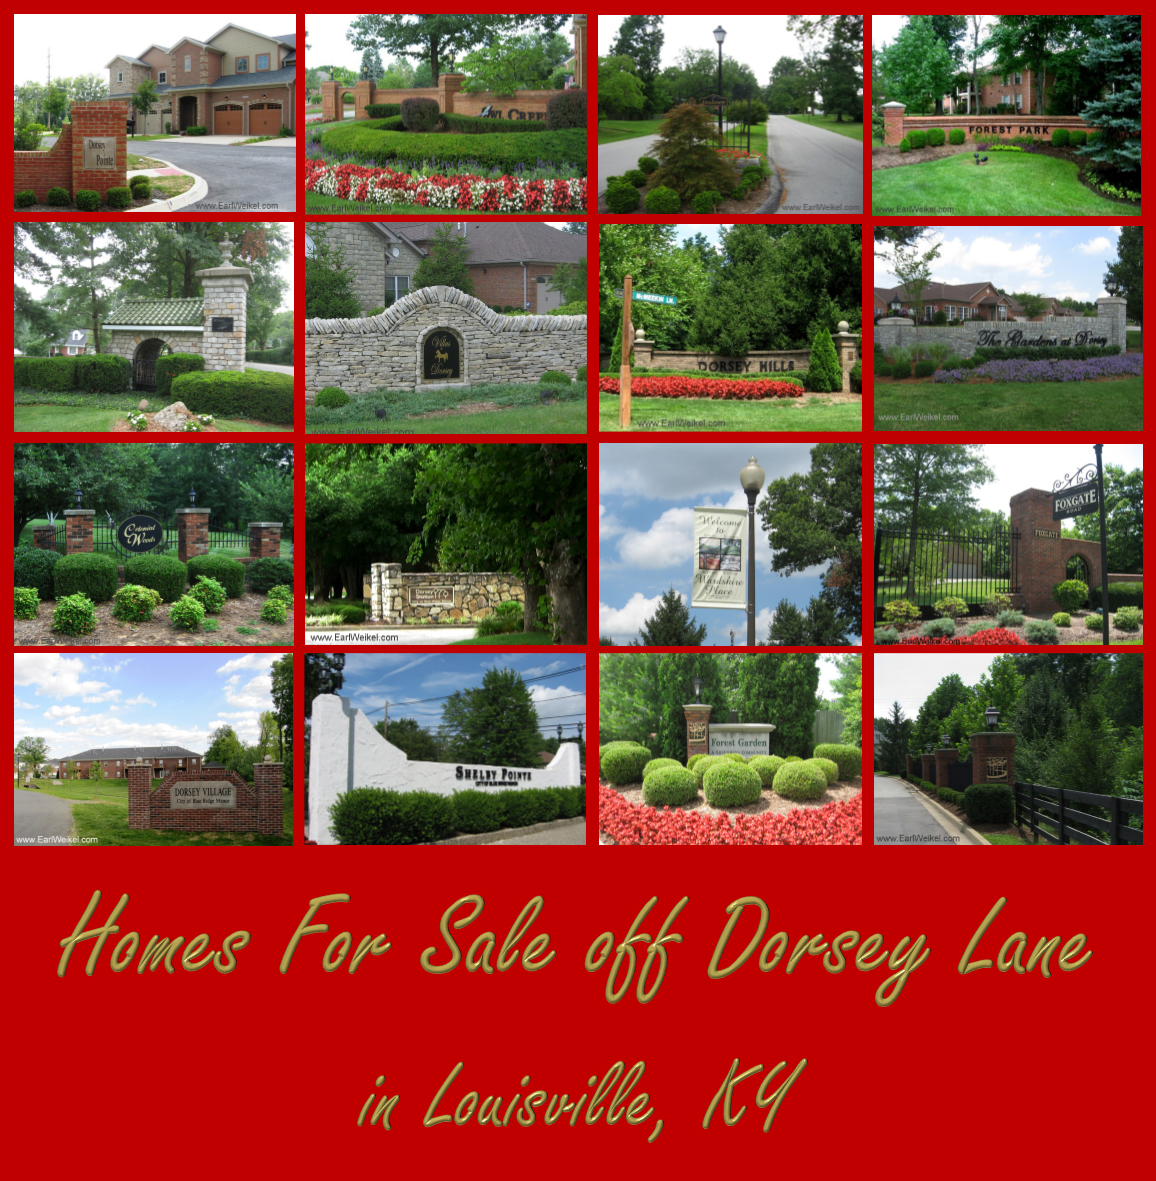 Homes For Sale Off Dorsey Ln Louisville KY Houses Condos Patio Homes